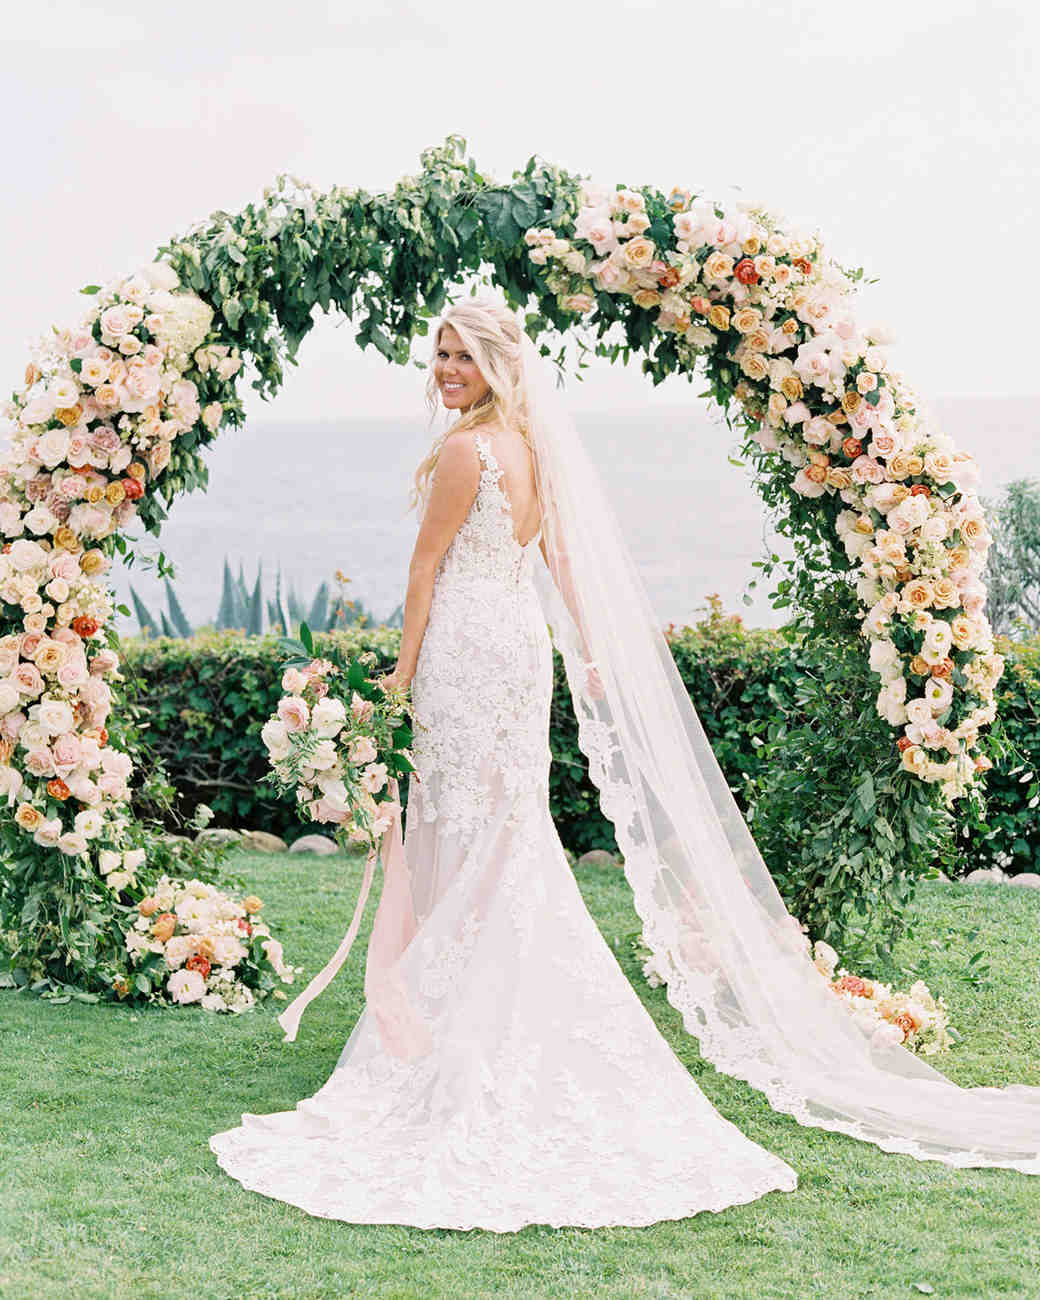 mykaela and brendon wedding bride standing beneath ceremony arch of roses